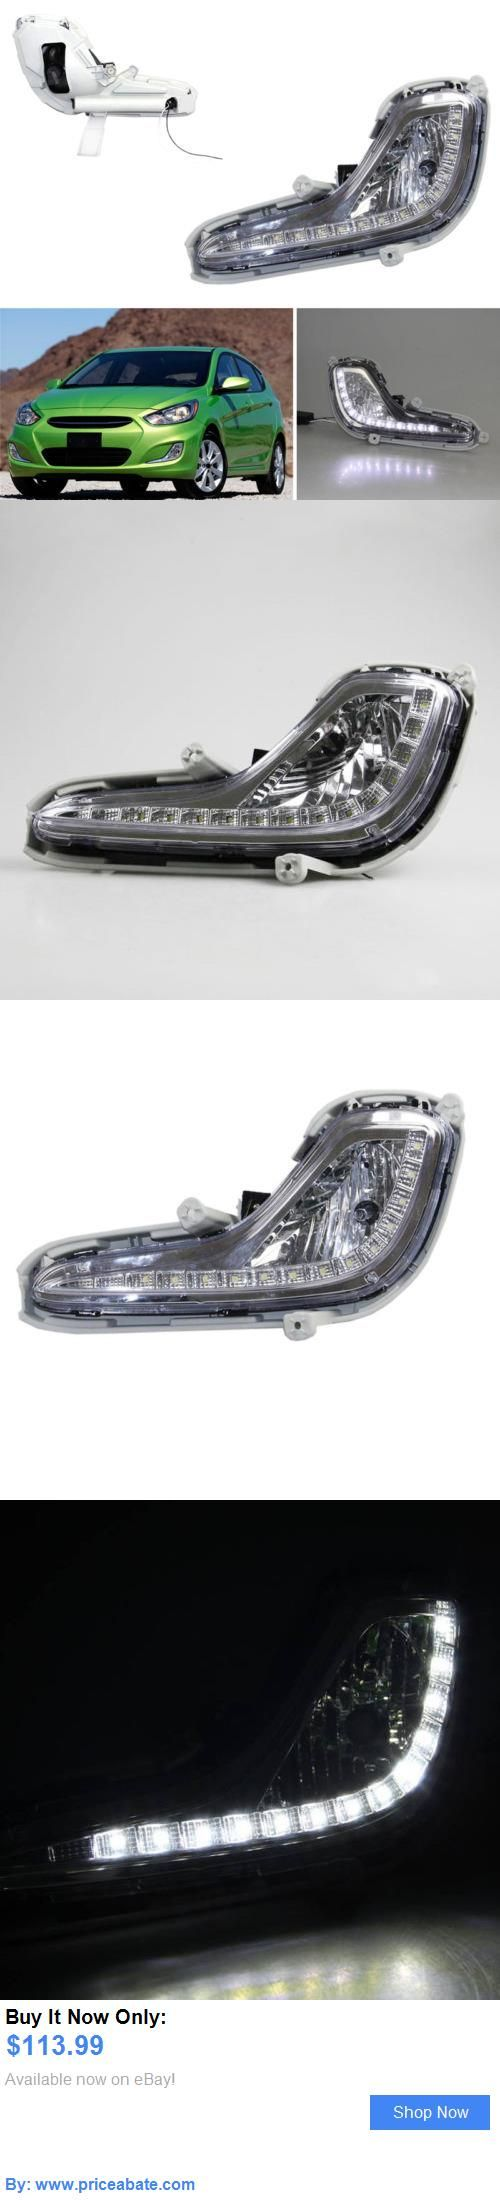 Motors Parts And Accessories: For Hyundai Accent 12-16 Auto White Led Lamp Beads Daytime Running Lights Drl 2* BUY IT NOW ONLY: $113.99 #priceabateMotorsPartsAndAccessories OR #priceabate